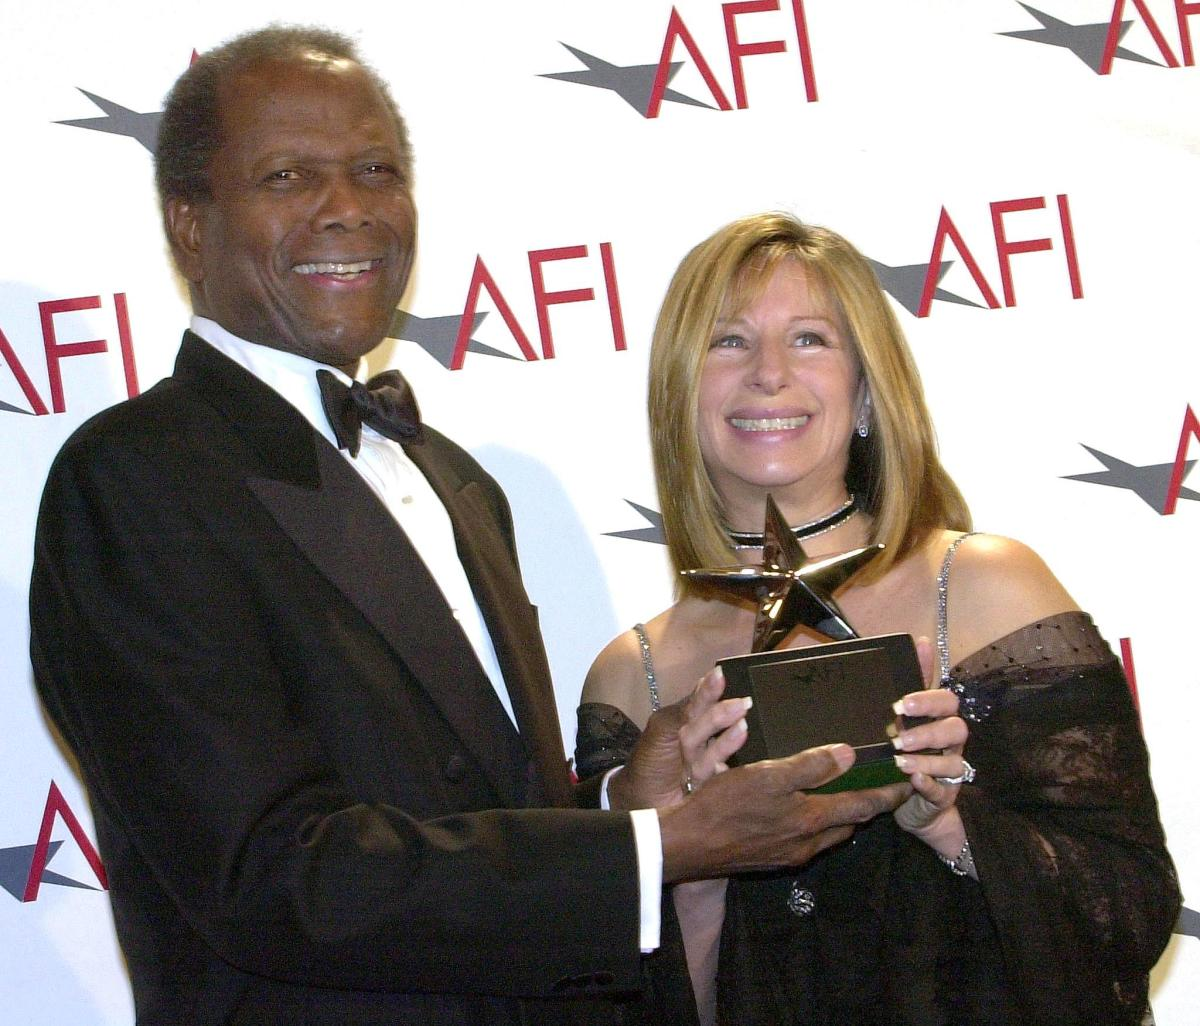 Barbra Streisand: In 2001 Sidney Poitier presents Streisand with the American Film Institute's Life Achievement Award in Beverly Hills, California.